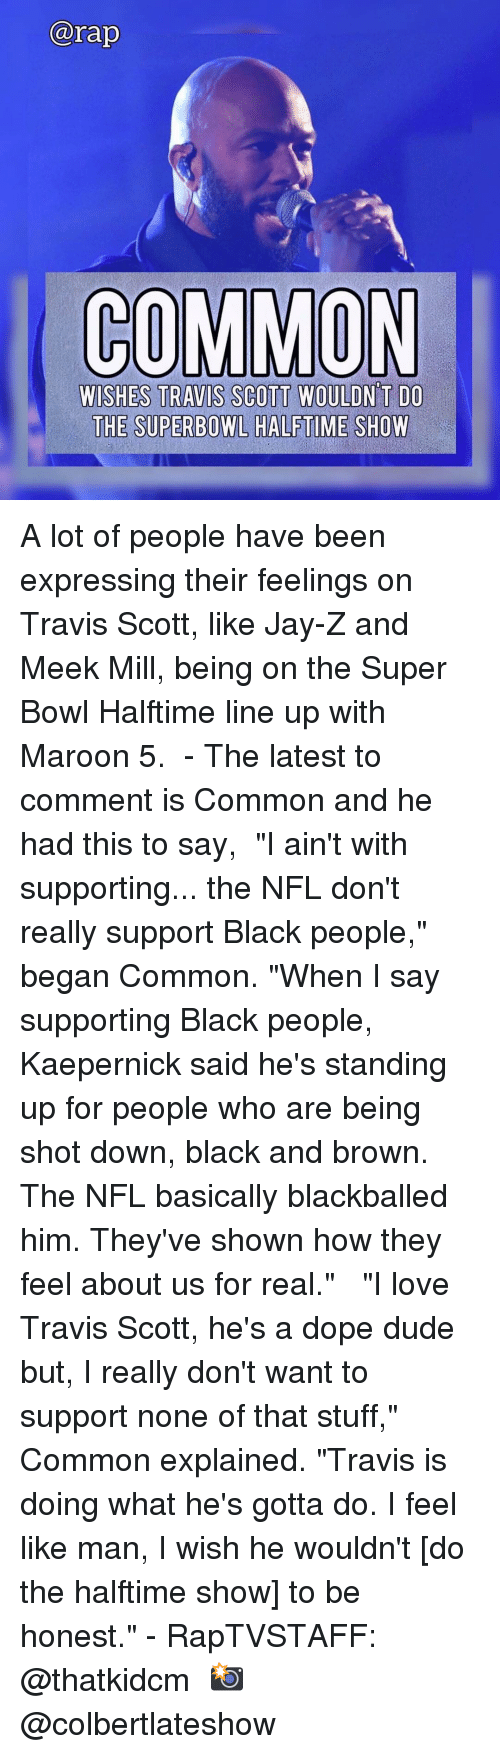 "Jay Z: arap  COMMON  WISHES TRAVIS SCOTT WOULDN T DO  THE SUPERBOWL HALFTIME SHOW A lot of people have been expressing their feelings on Travis Scott, like Jay-Z and Meek Mill, being on the Super Bowl Halftime line up with Maroon 5. ⁣ -⁣ The latest to comment is Common and he had this to say,⁣ ⁣ ""I ain't with supporting... the NFL don't really support Black people,"" began Common. ""When I say supporting Black people, Kaepernick said he's standing up for people who are being shot down, black and brown. The NFL basically blackballed him. They've shown how they feel about us for real."" ⁣ ⁣ ""I love Travis Scott, he's a dope dude but, I really don't want to support none of that stuff,"" Common explained. ""Travis is doing what he's gotta do. I feel like man, I wish he wouldn't [do the halftime show] to be honest.""⁣ -⁣ RapTVSTAFF: @thatkidcm⁣ 📸 @colbertlateshow⁣"